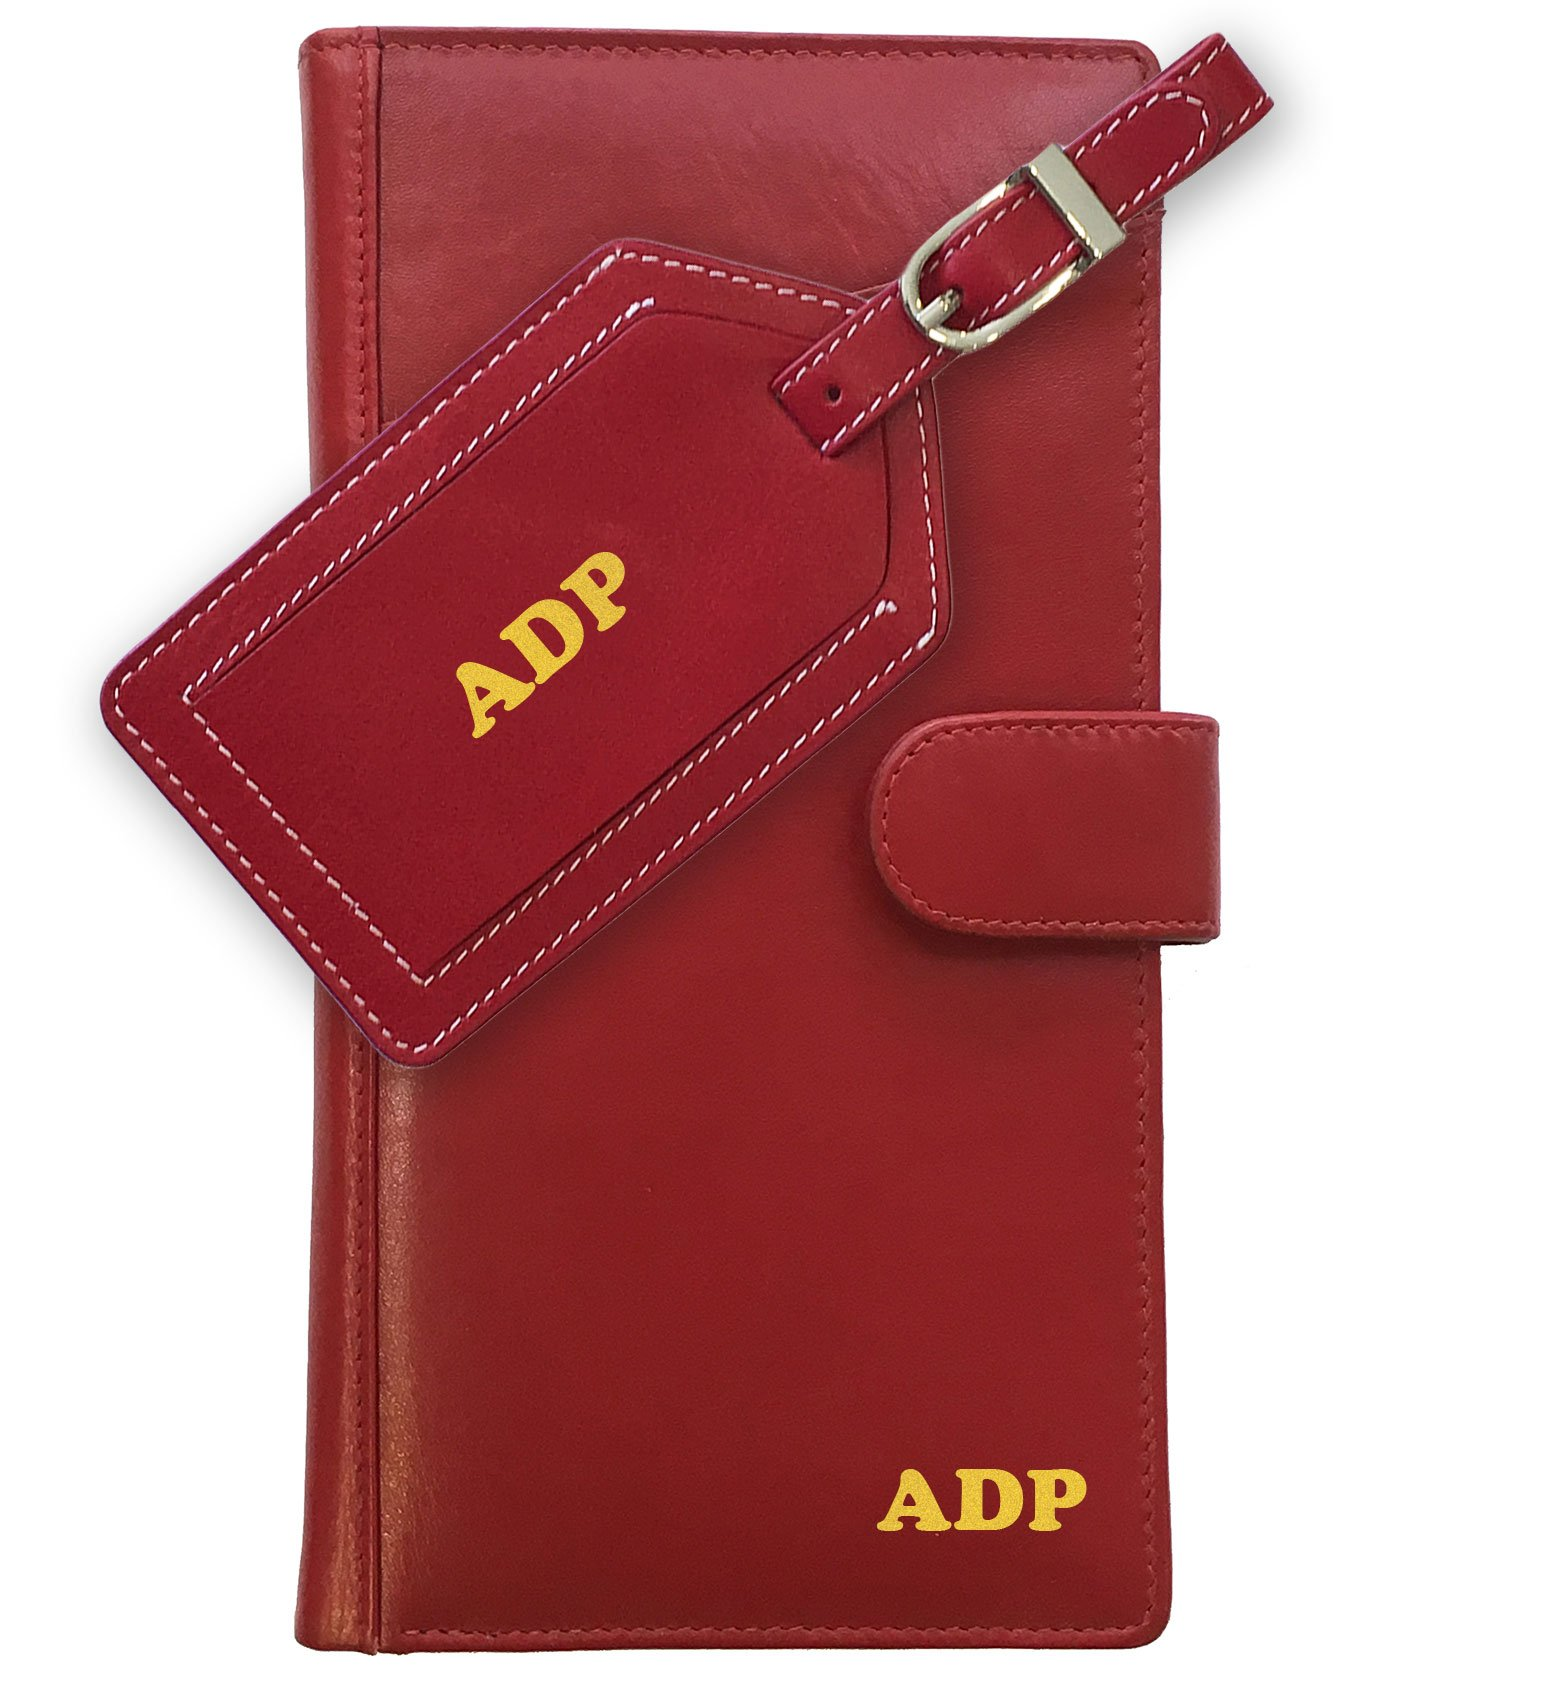 Personalized Monogrammed Red Leather RFID Travel Wallet and Luggage Tag